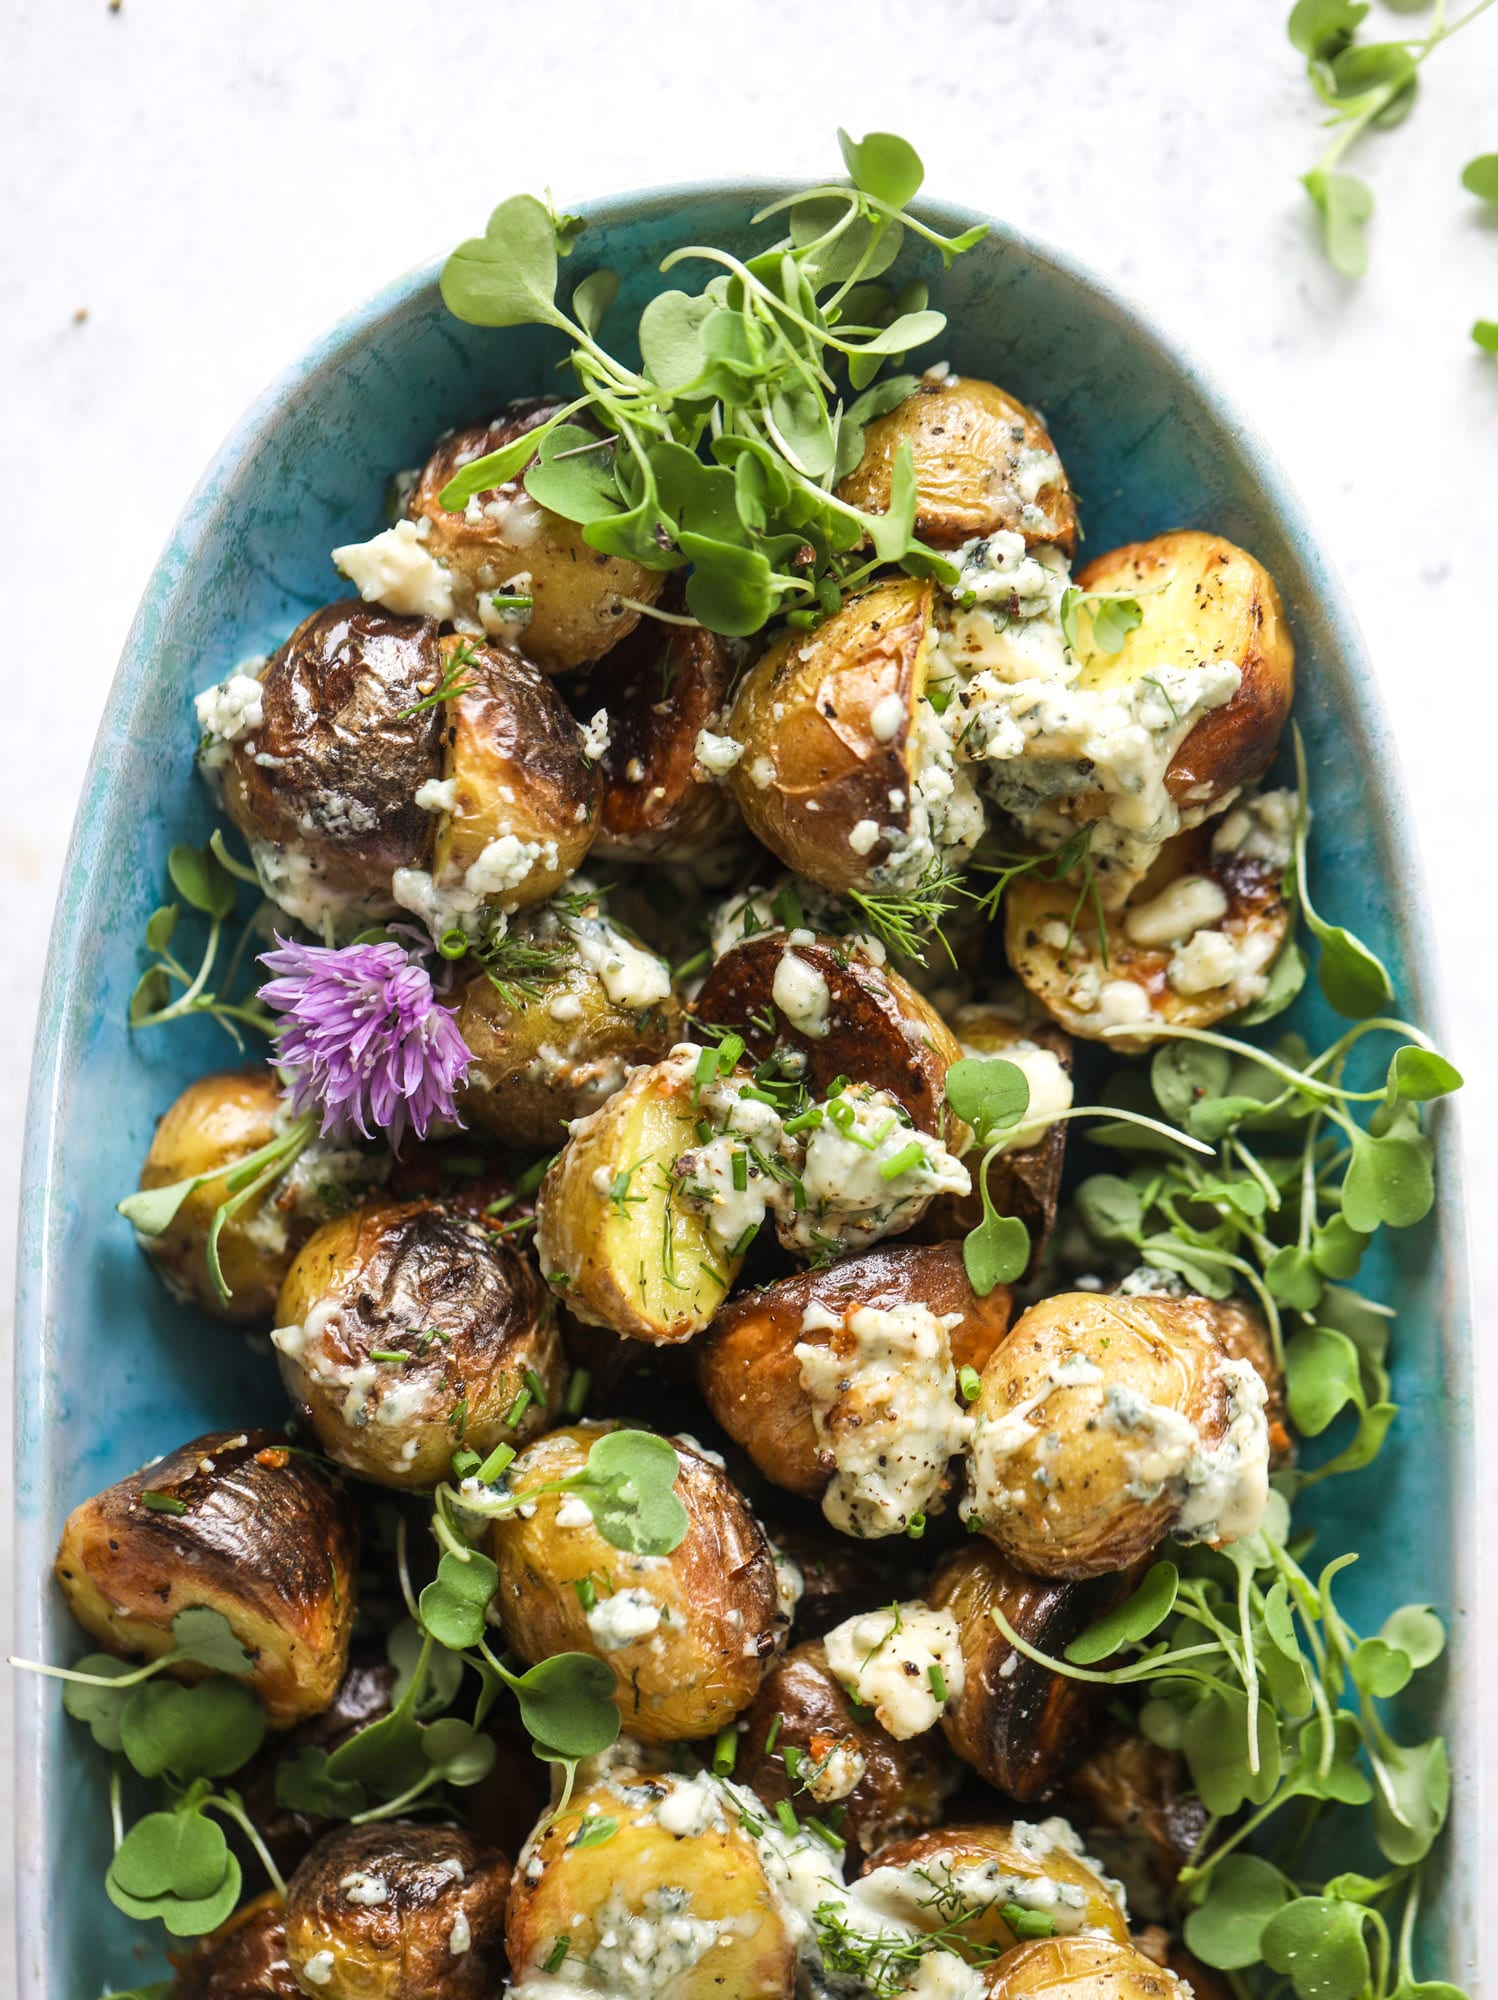 These grilled gorgonzola potatoes are loaded with flavor! Crispy, crunchy grilled bab golds topped with creamy blue cheese and fresh herbs.